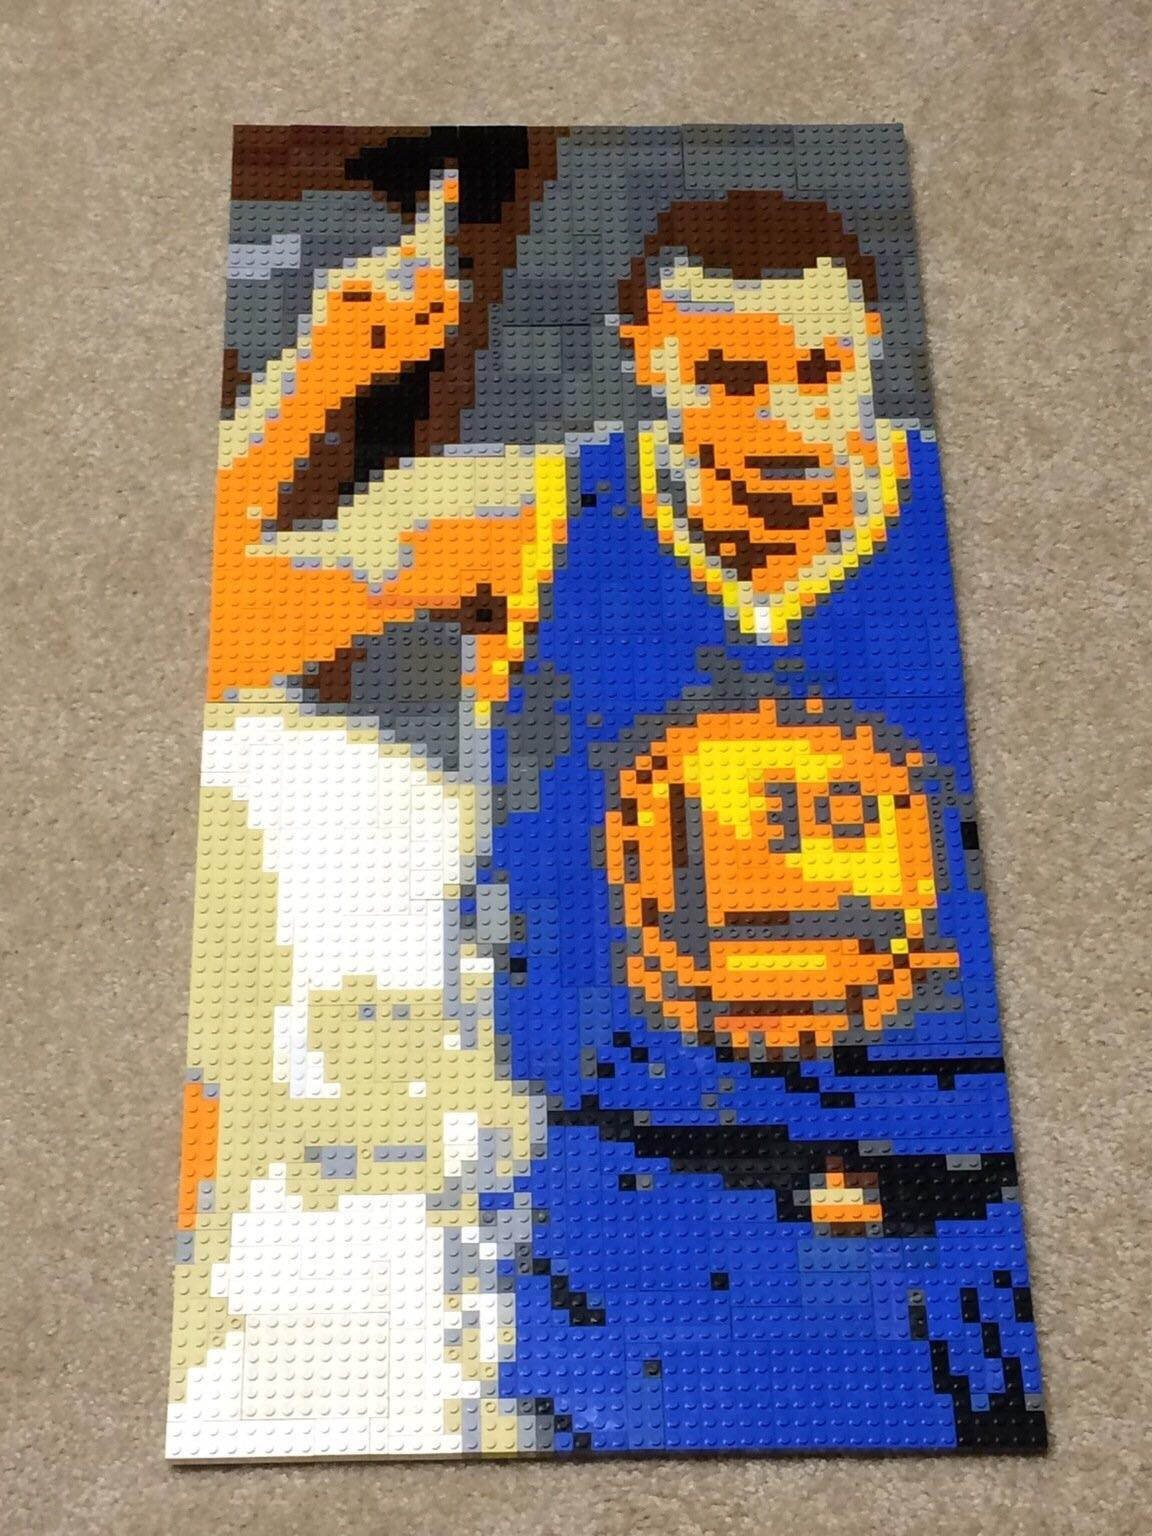 Steph Curry LEGO mosaic   lego MOCSteph Curry LEGO mosaic